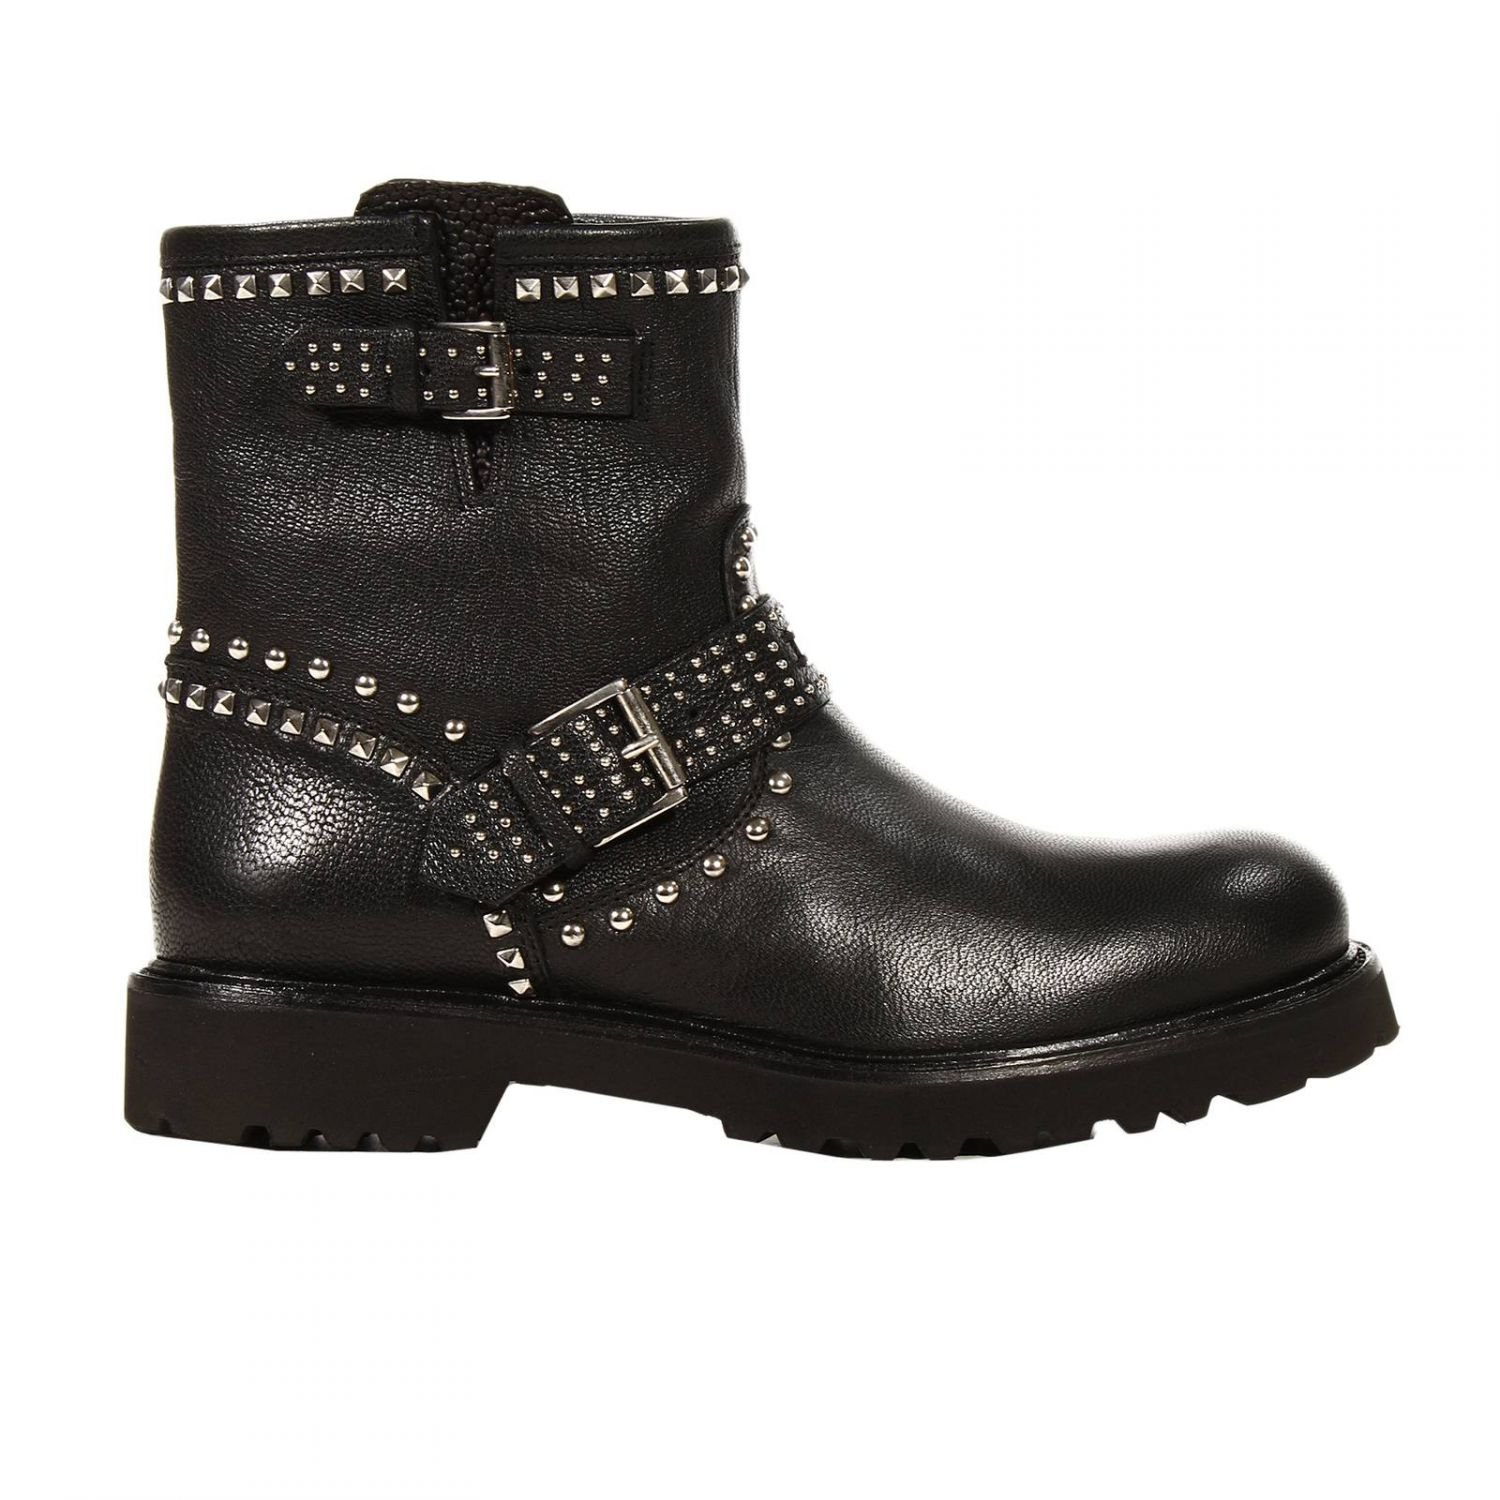 Big Sale For Sale John Richmond Boots Where Can I Order Ztb34RQin